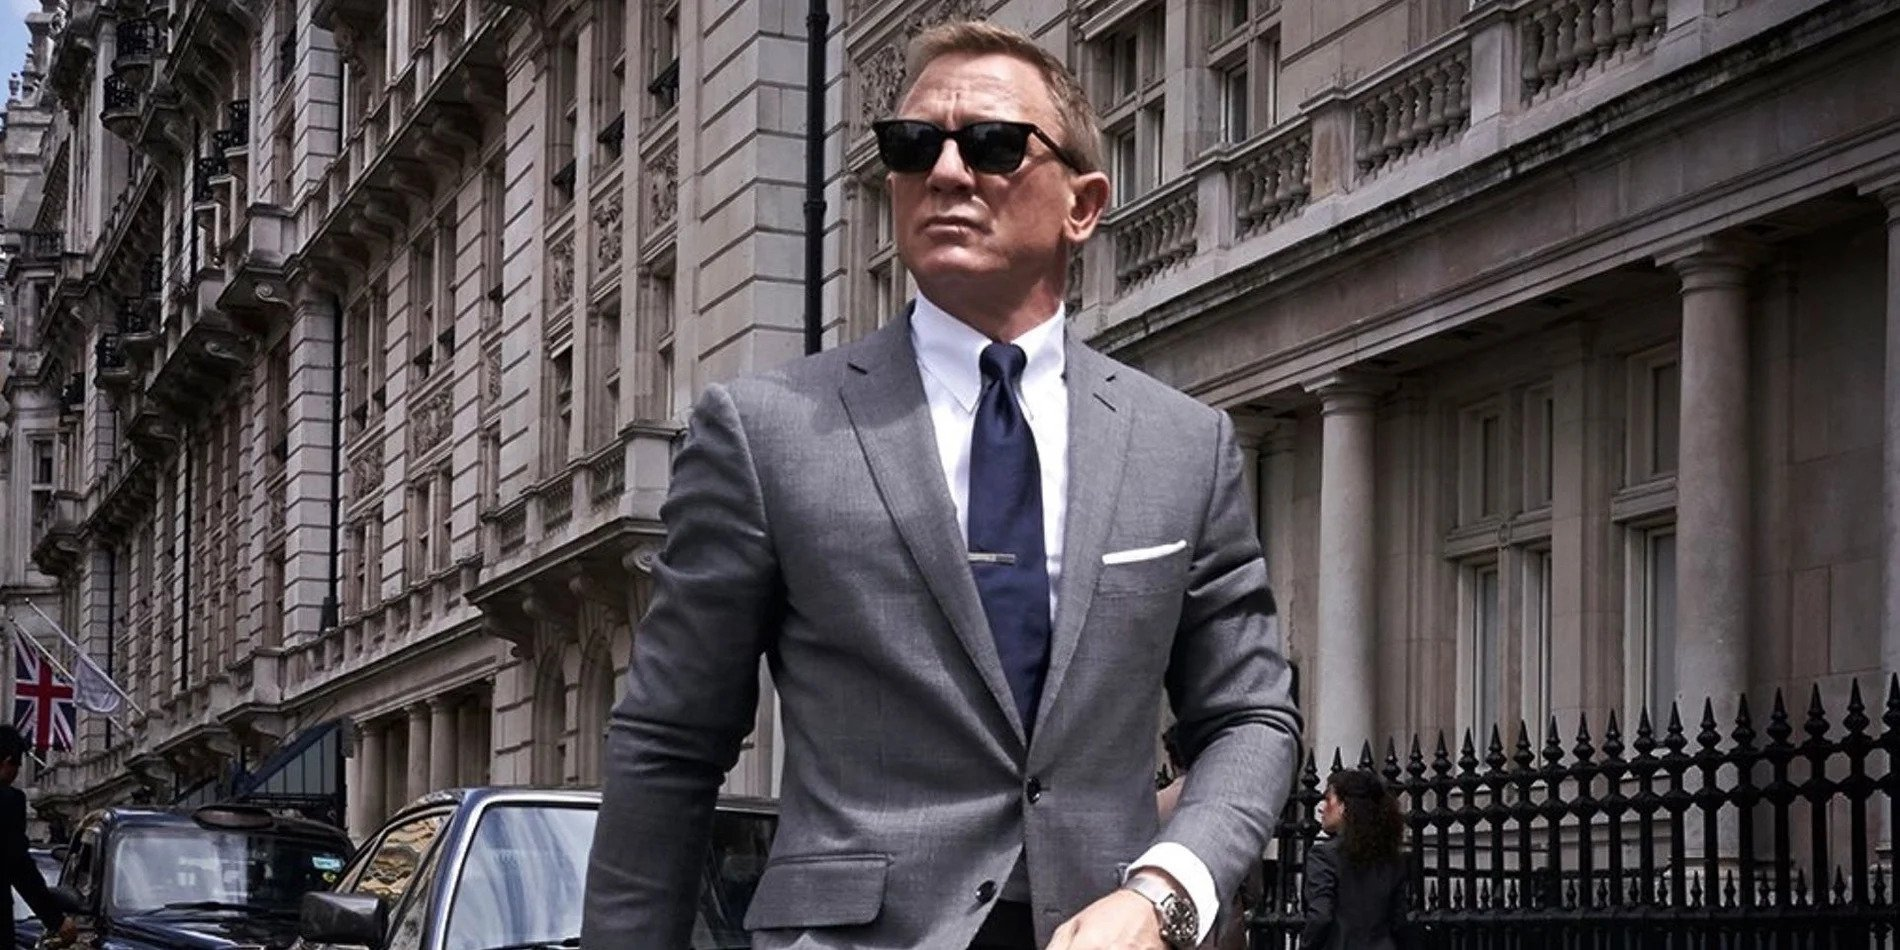 No Time To Die Bond 25 Trailer Release Date Cast And Details